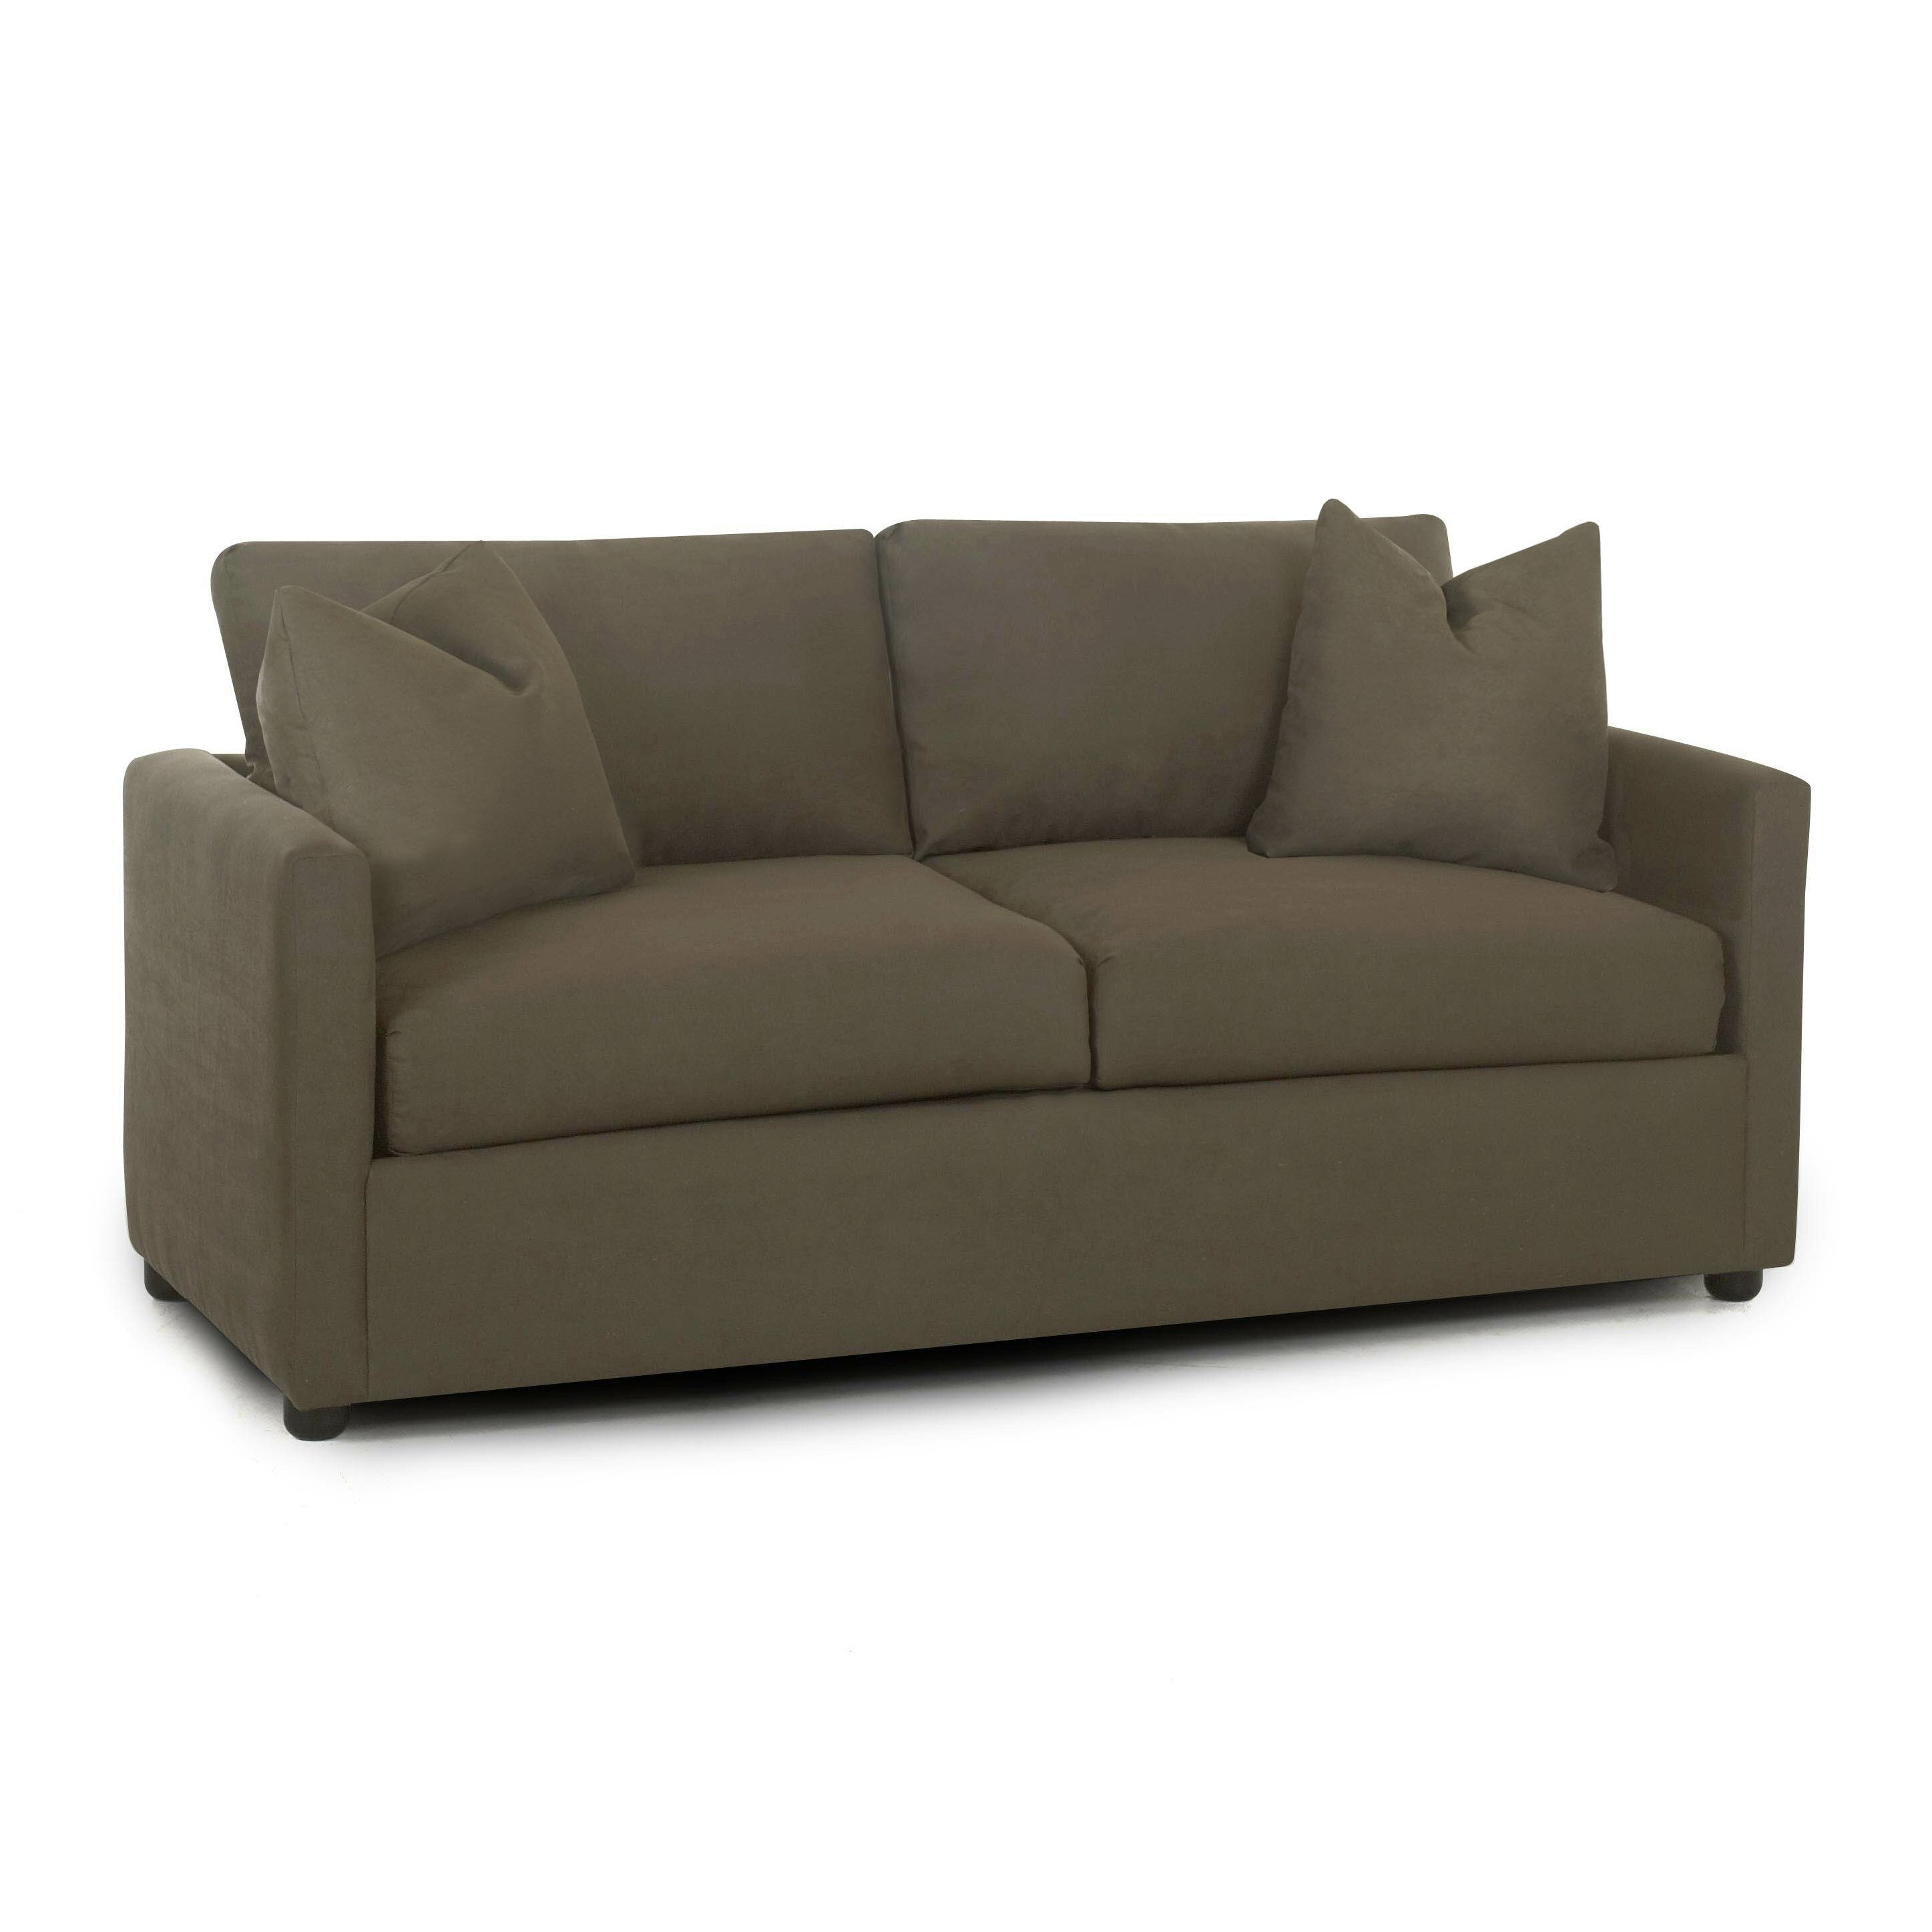 Darby Home Co Greenlaw Jacobs Enso Memory Foam Regular